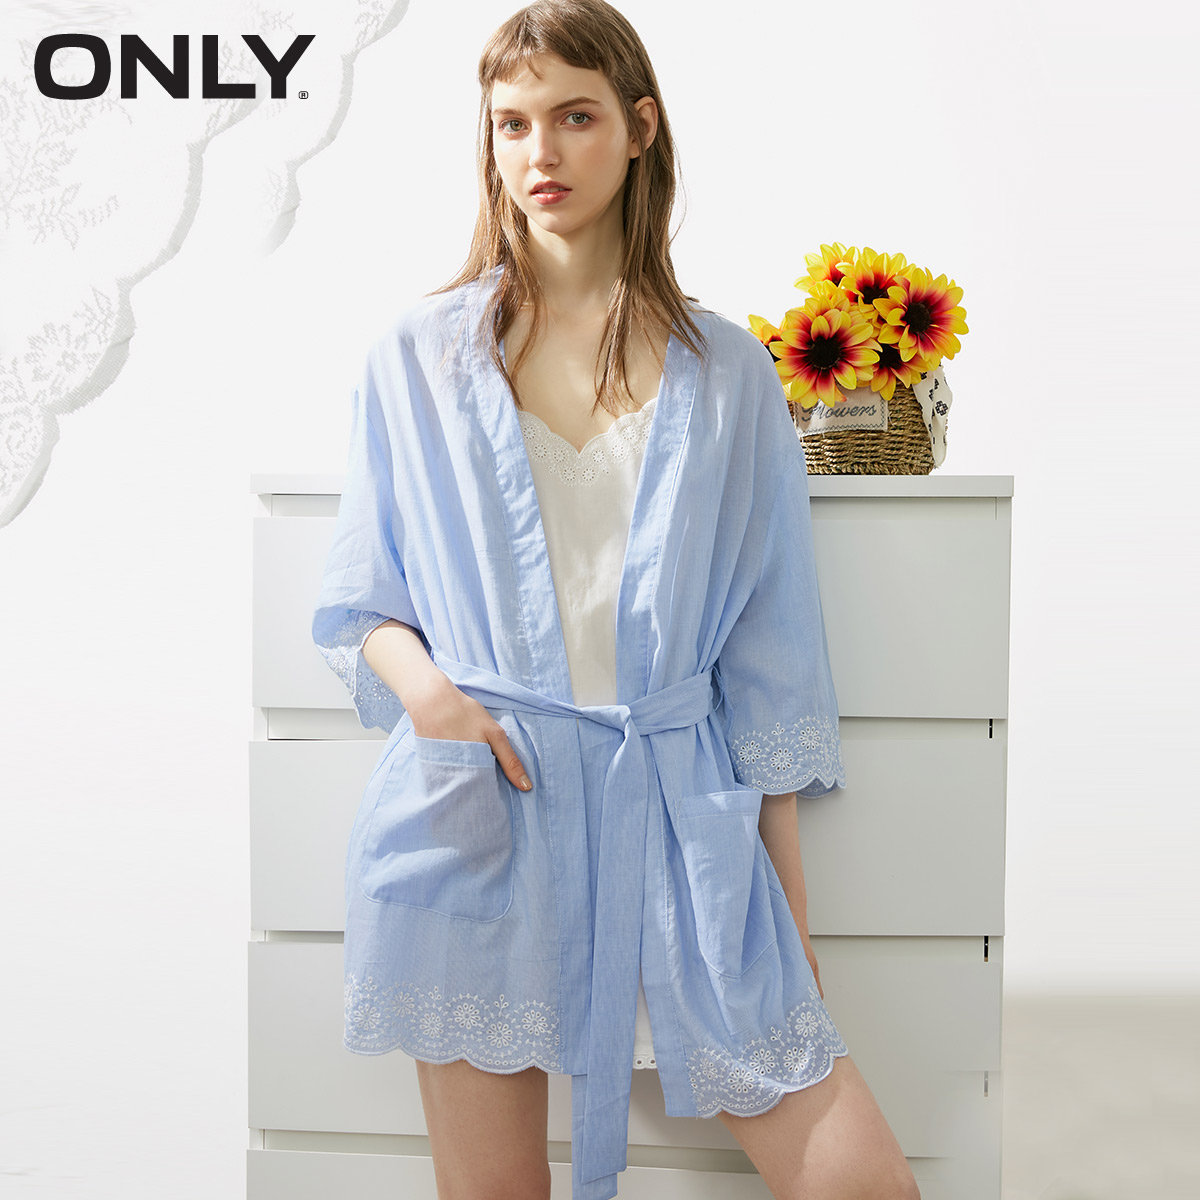 ONLY 2019 Spring Summer New Women's Lace-up Embroidered Leisure Night Gown |1182R8501